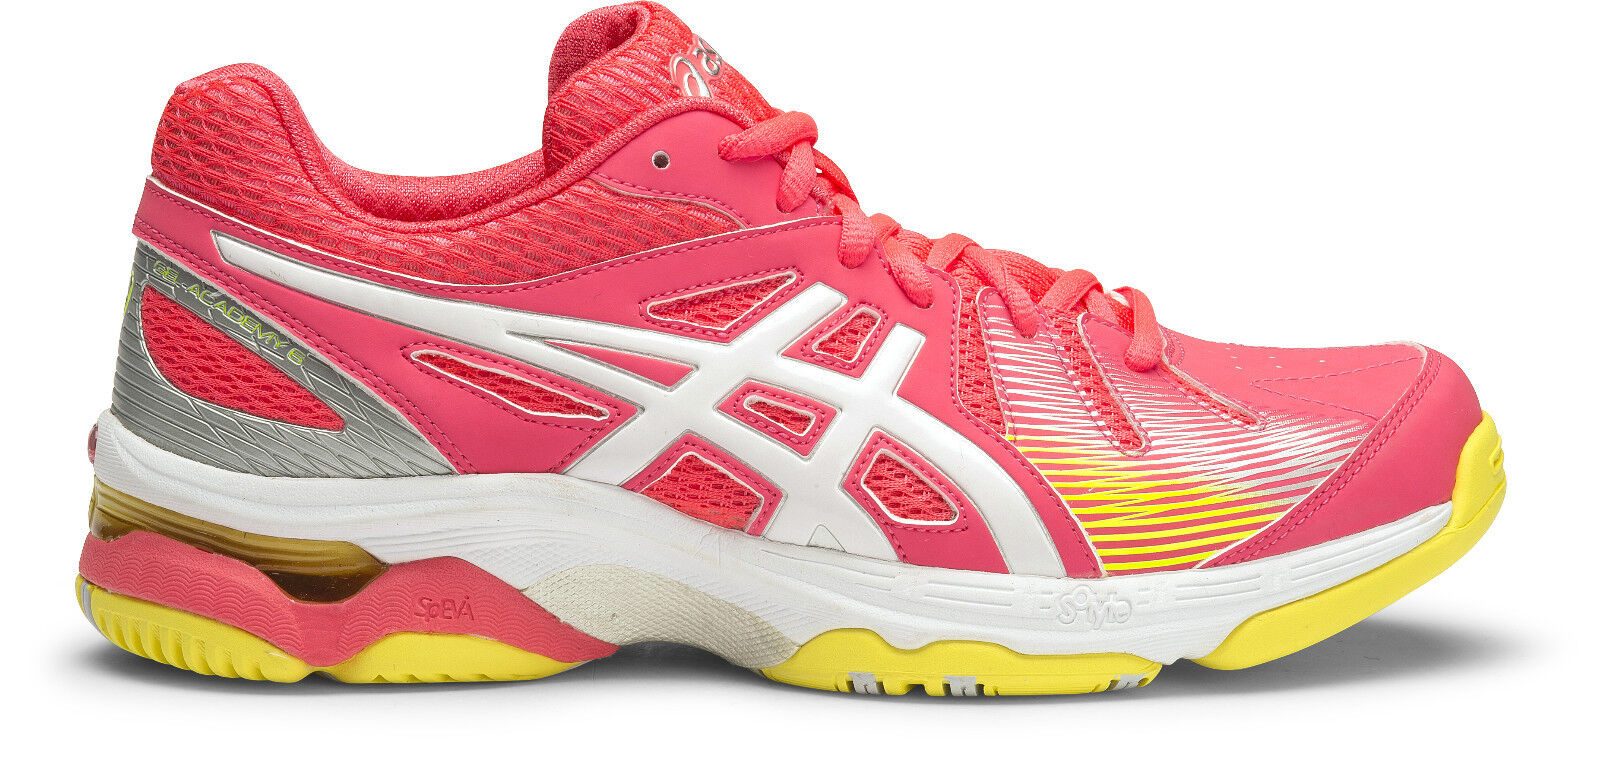 * NEW * Asics Gel Academy 6 Womens Netball Shoe Price reduction Price reduction Wild casual shoes